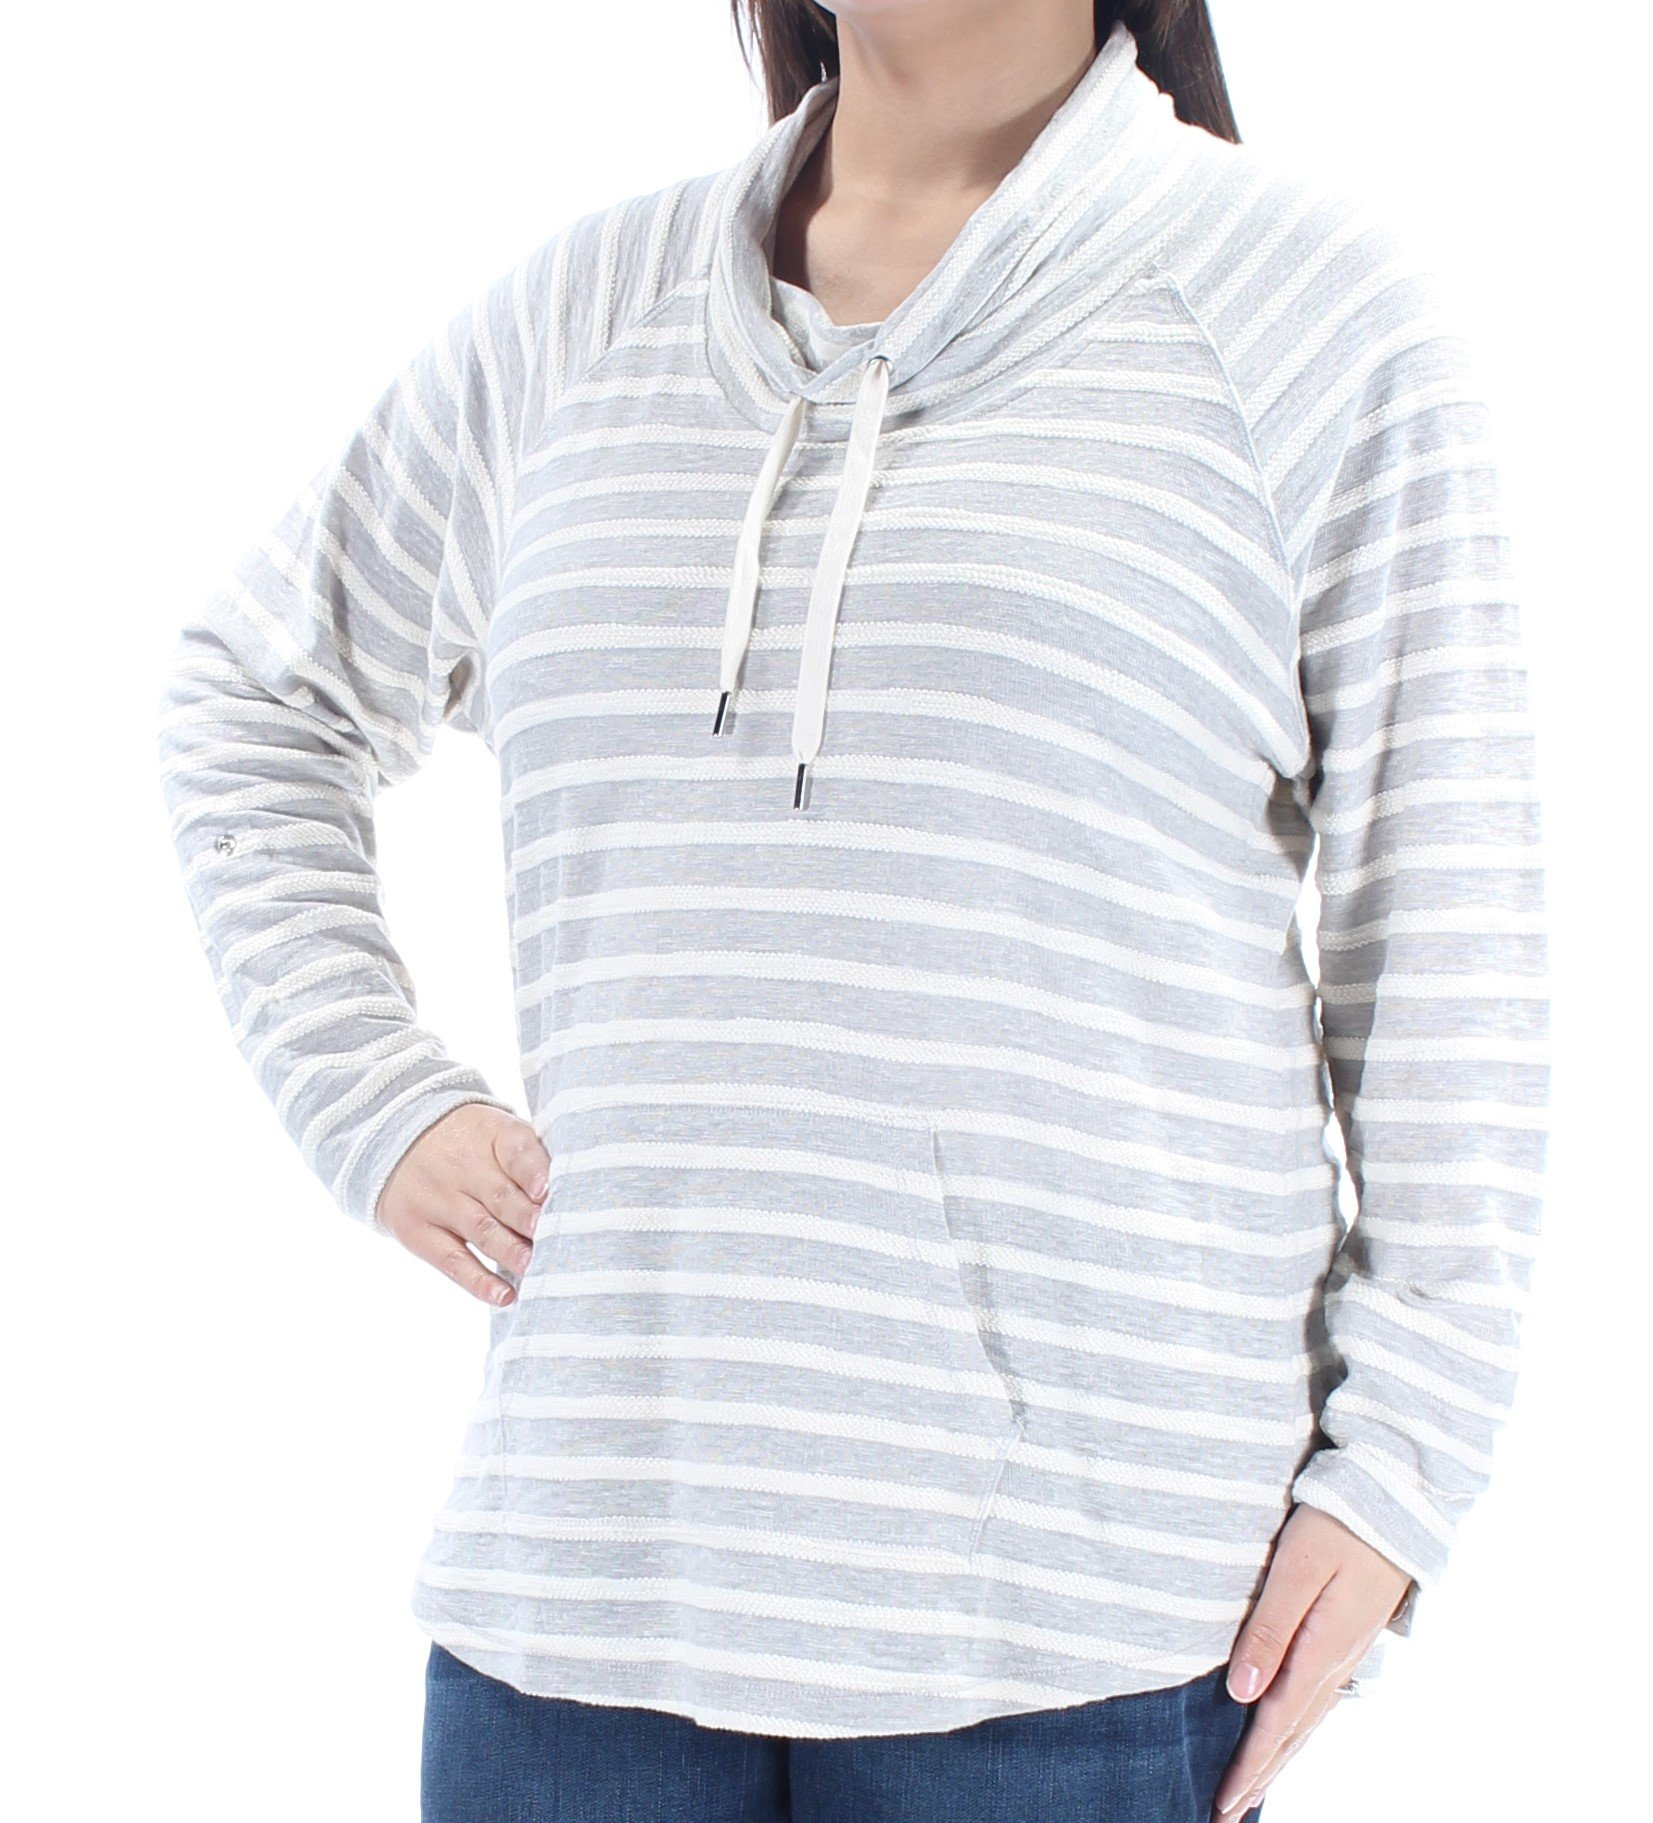 Style & Co. Womens Plus Striped Cowl Neck Sweatshirt Gray 1X by Style & Co.